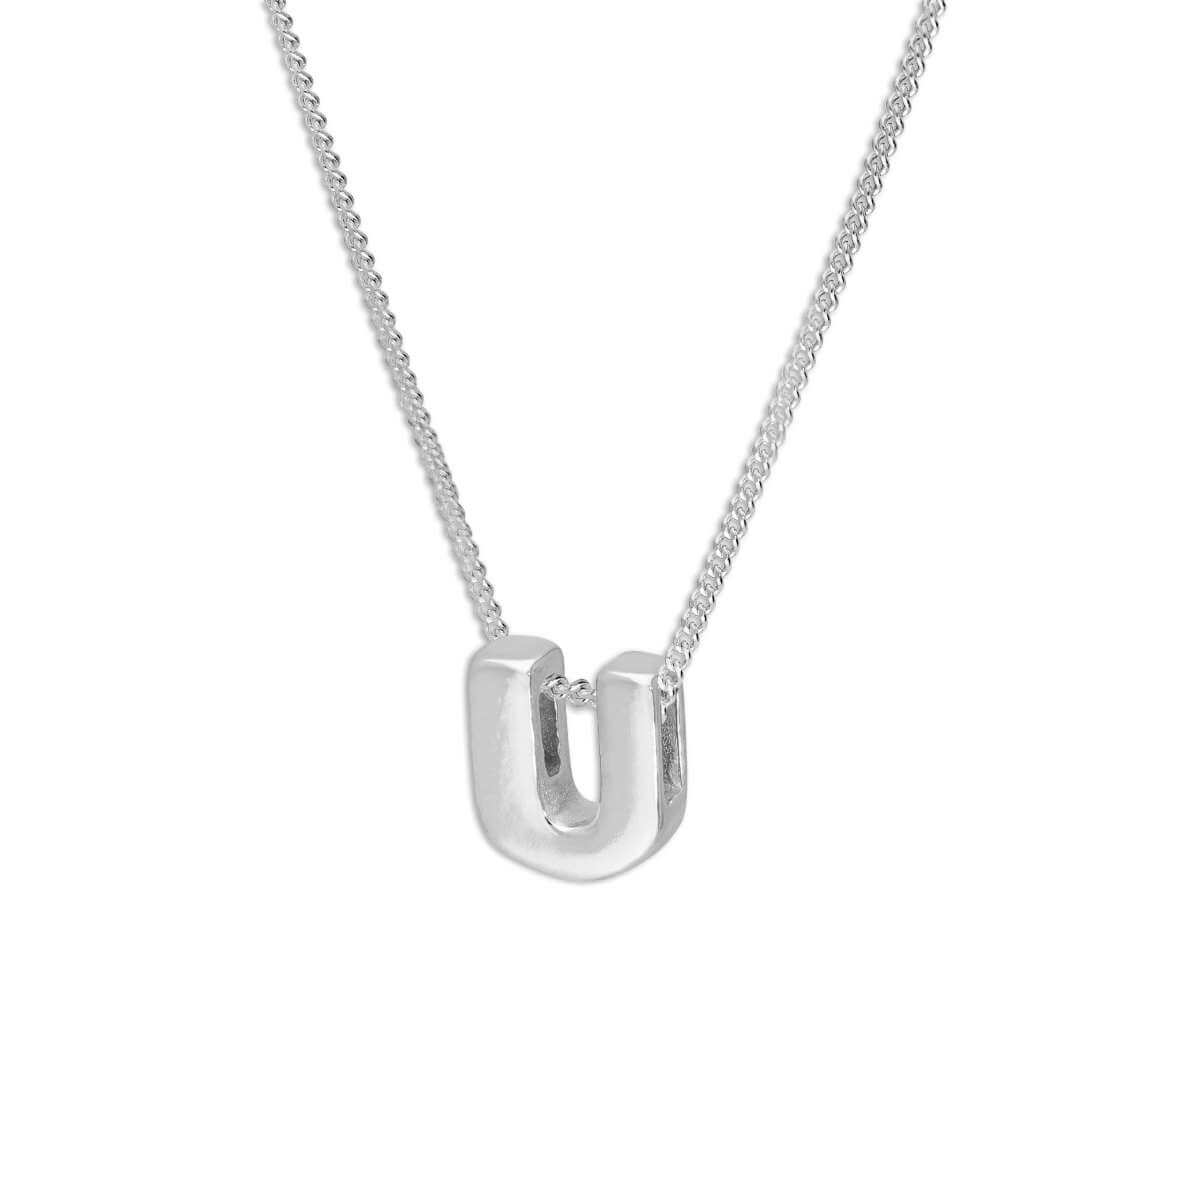 Sterling Silver Alphabet Letter Threader Bead 16+2 Inch Necklace U